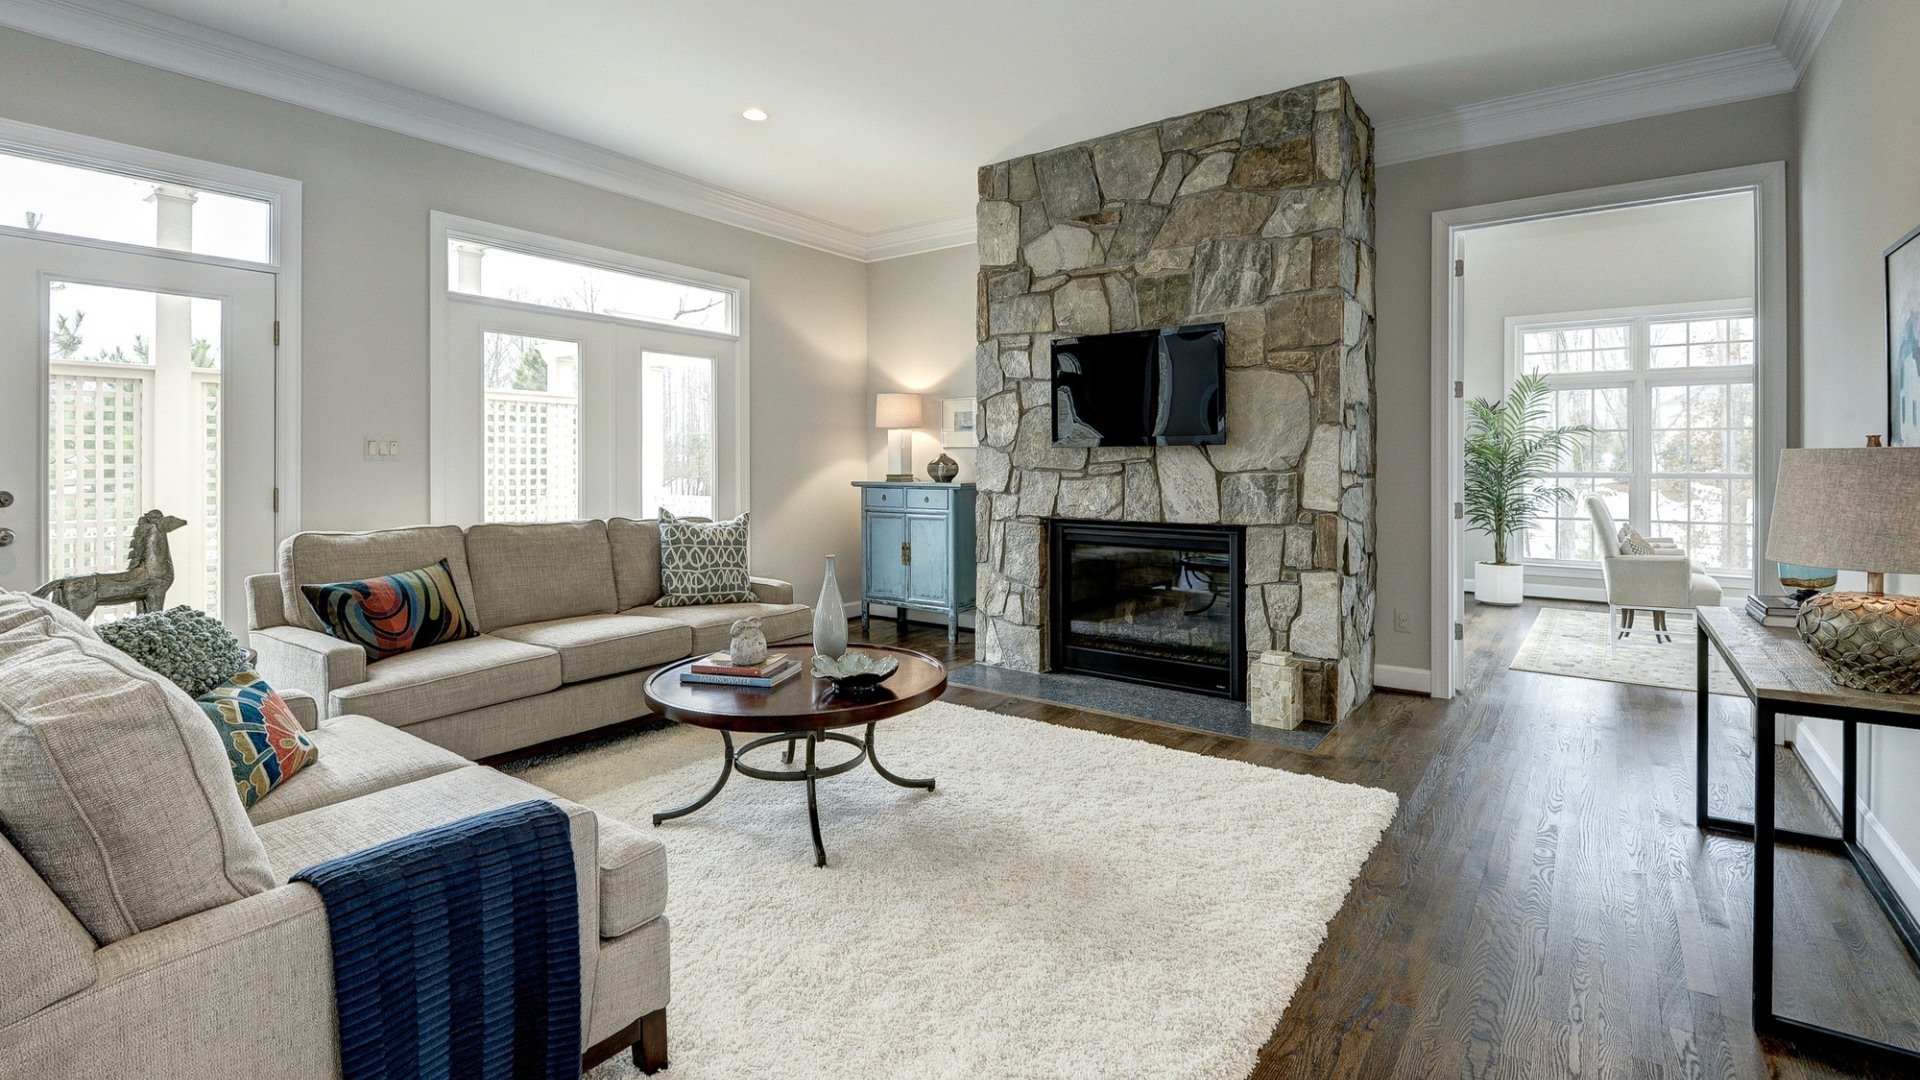 The family room in a Grayson former model home, which may vary somewhat from the home planned at Vale Crest Homesite 5. Some optional features shown. Please see sales manager for details.